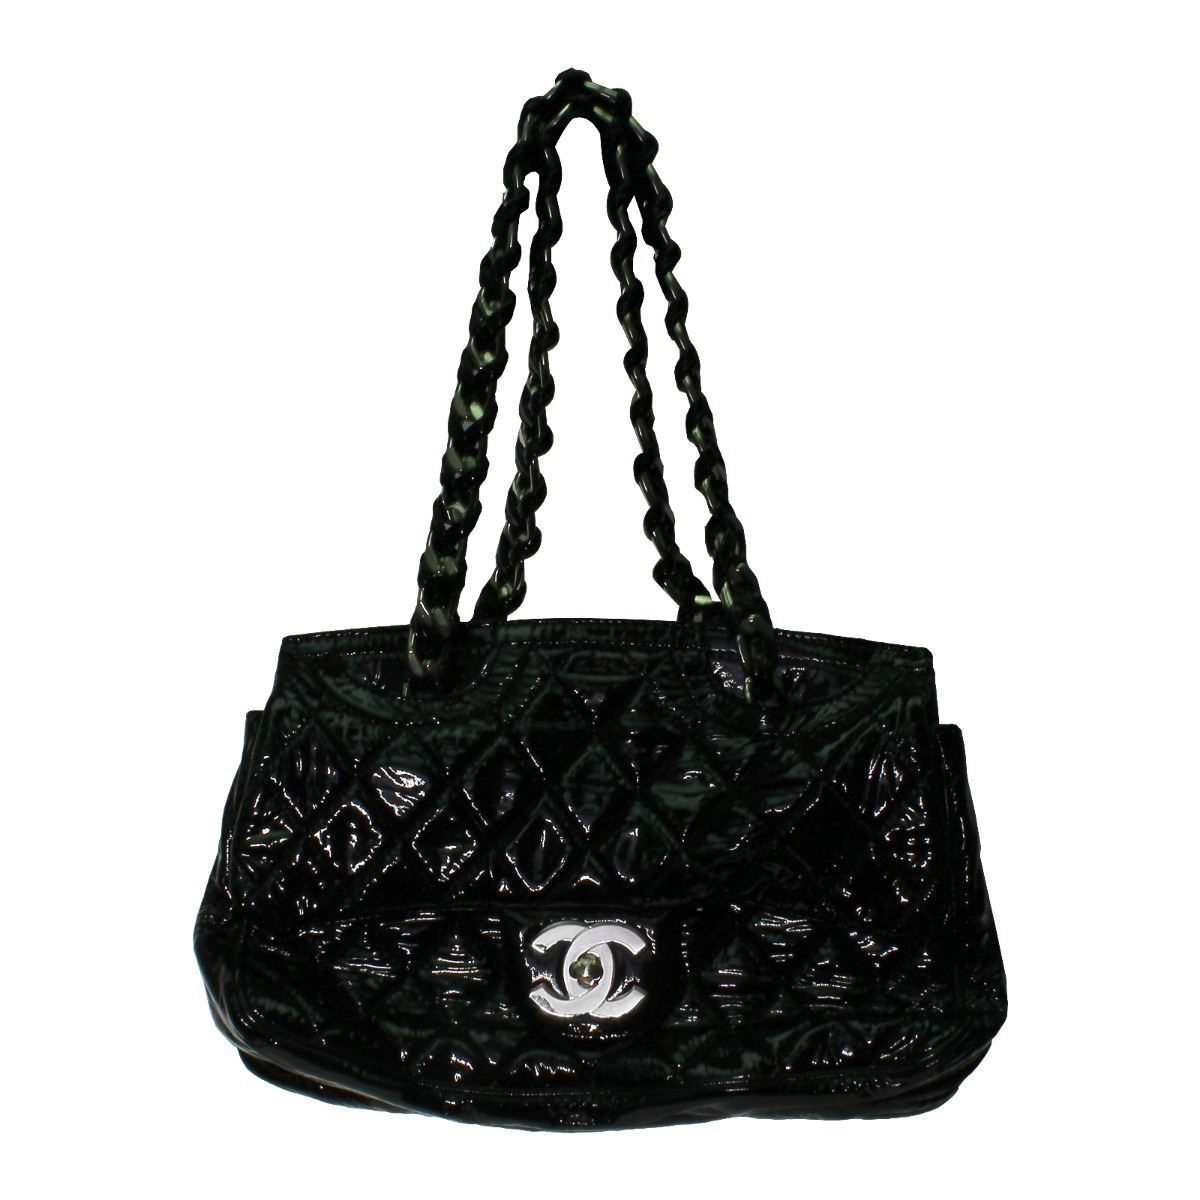 bcf8c700cdae16 Image 1 : Chanel Puffy Black Patent Leather Flap Bag - #405 ...